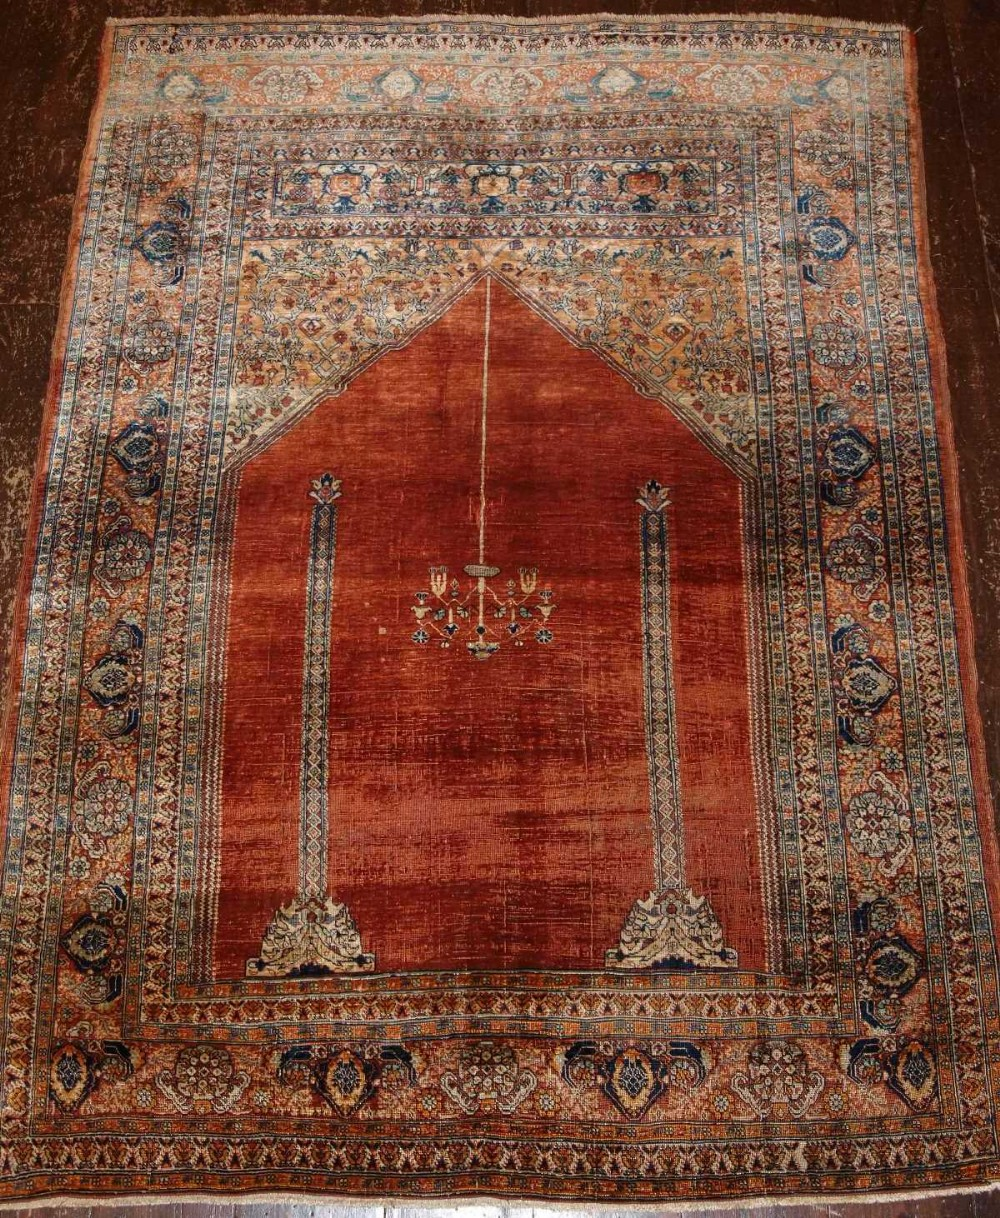 antique turkish silk prayer rug ottoman transylvanian design late 19th cent